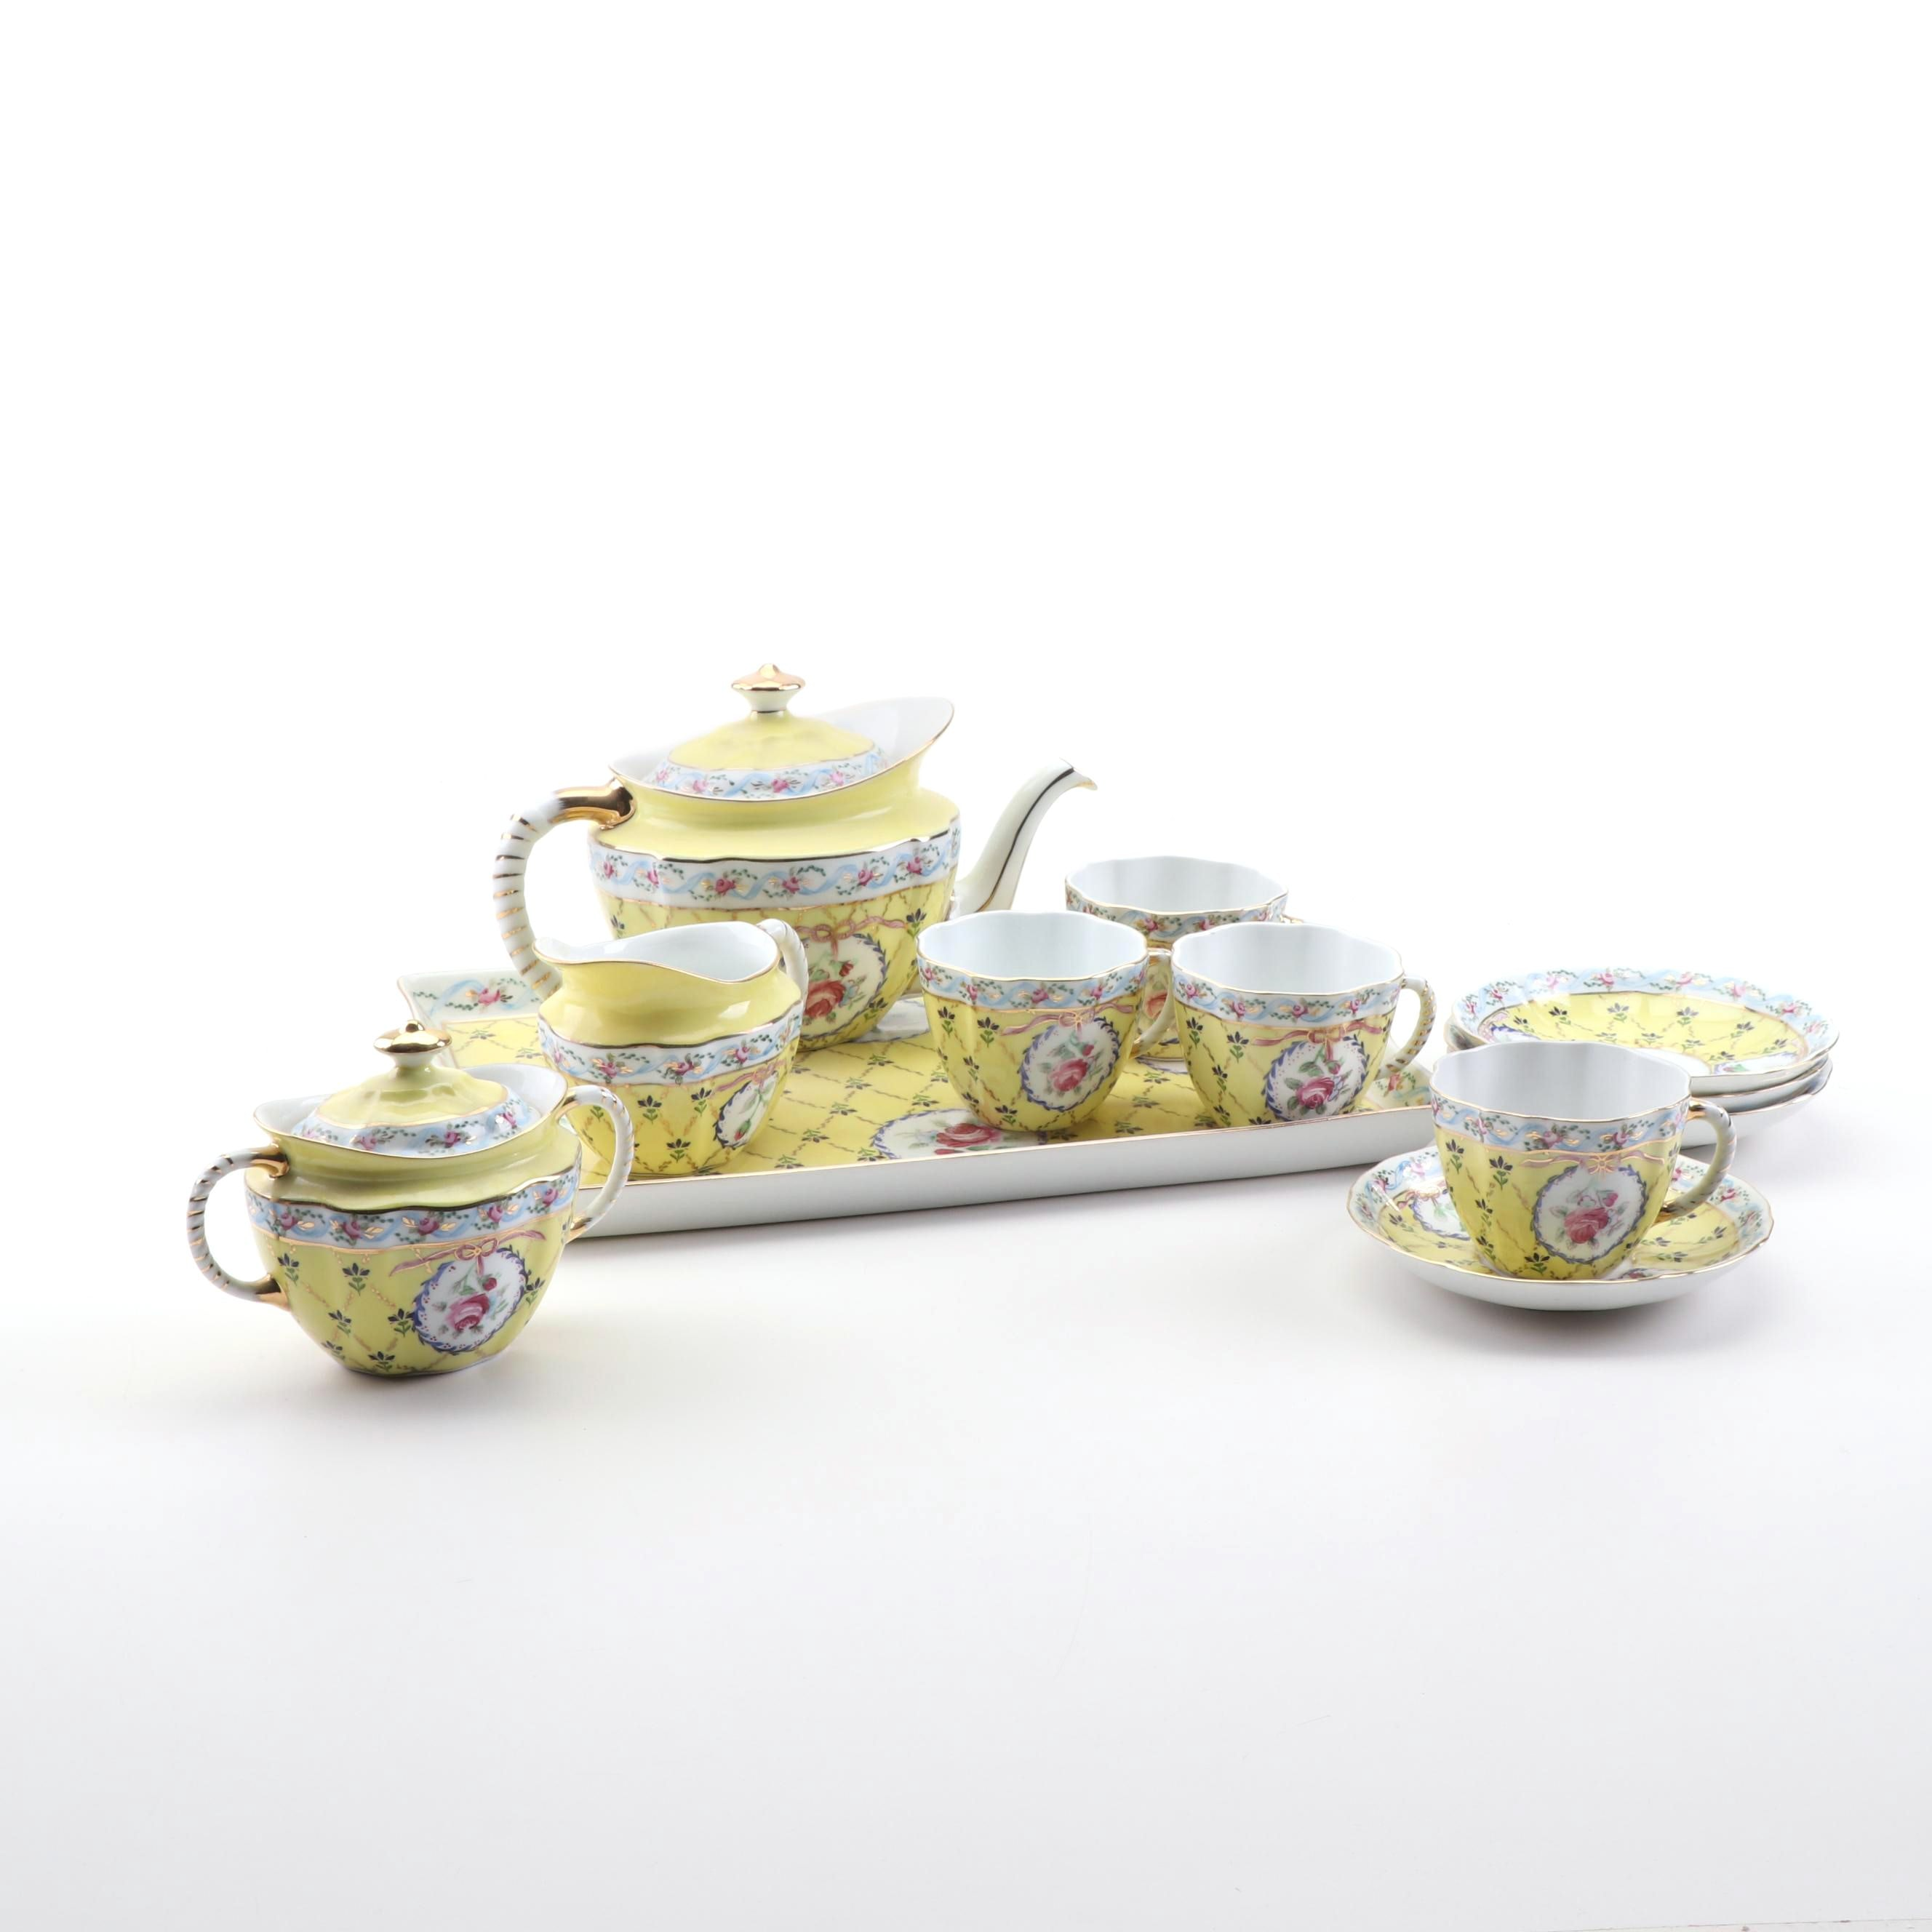 Royal Danube Porcelain Tea Set